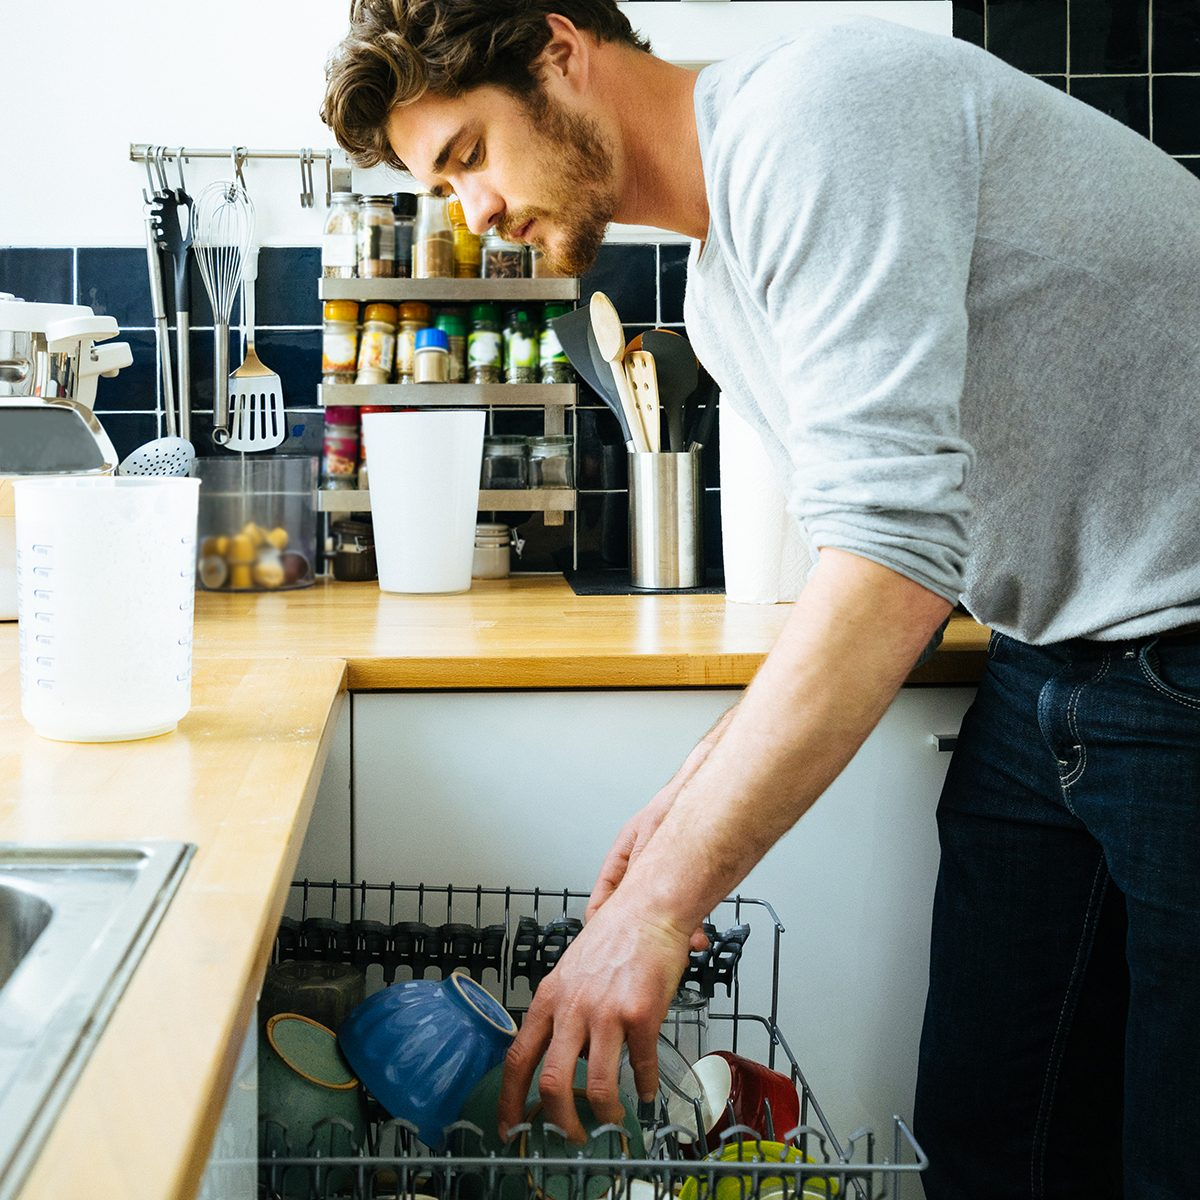 Man at home loading the dishwasher, putting dirty dishes into the machine.